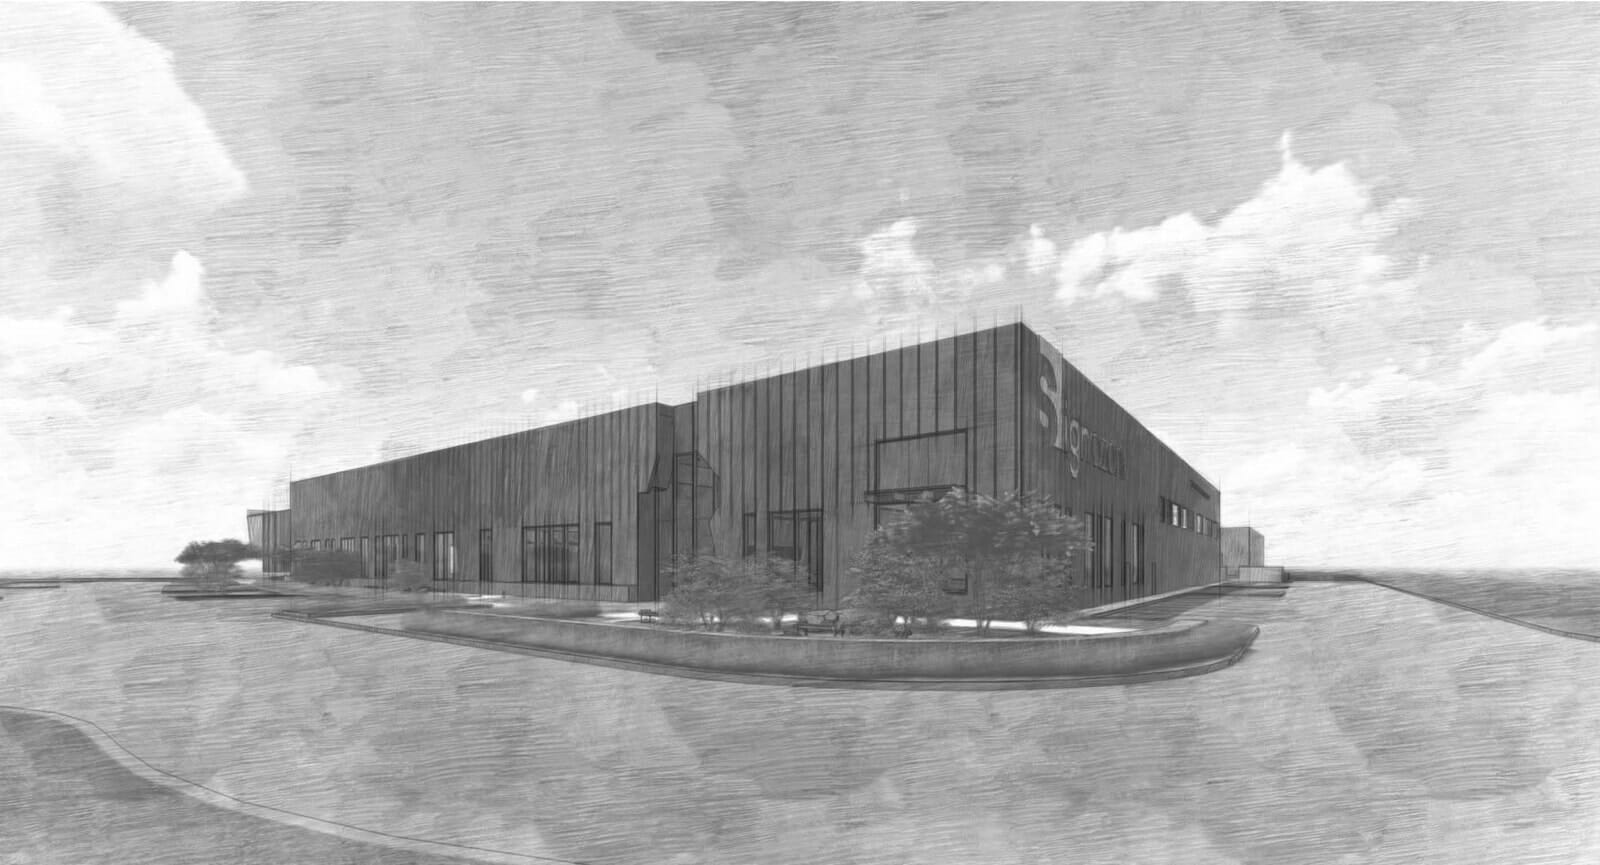 Bob Moore Construction Starts Construction on new Signazon facility in Plano